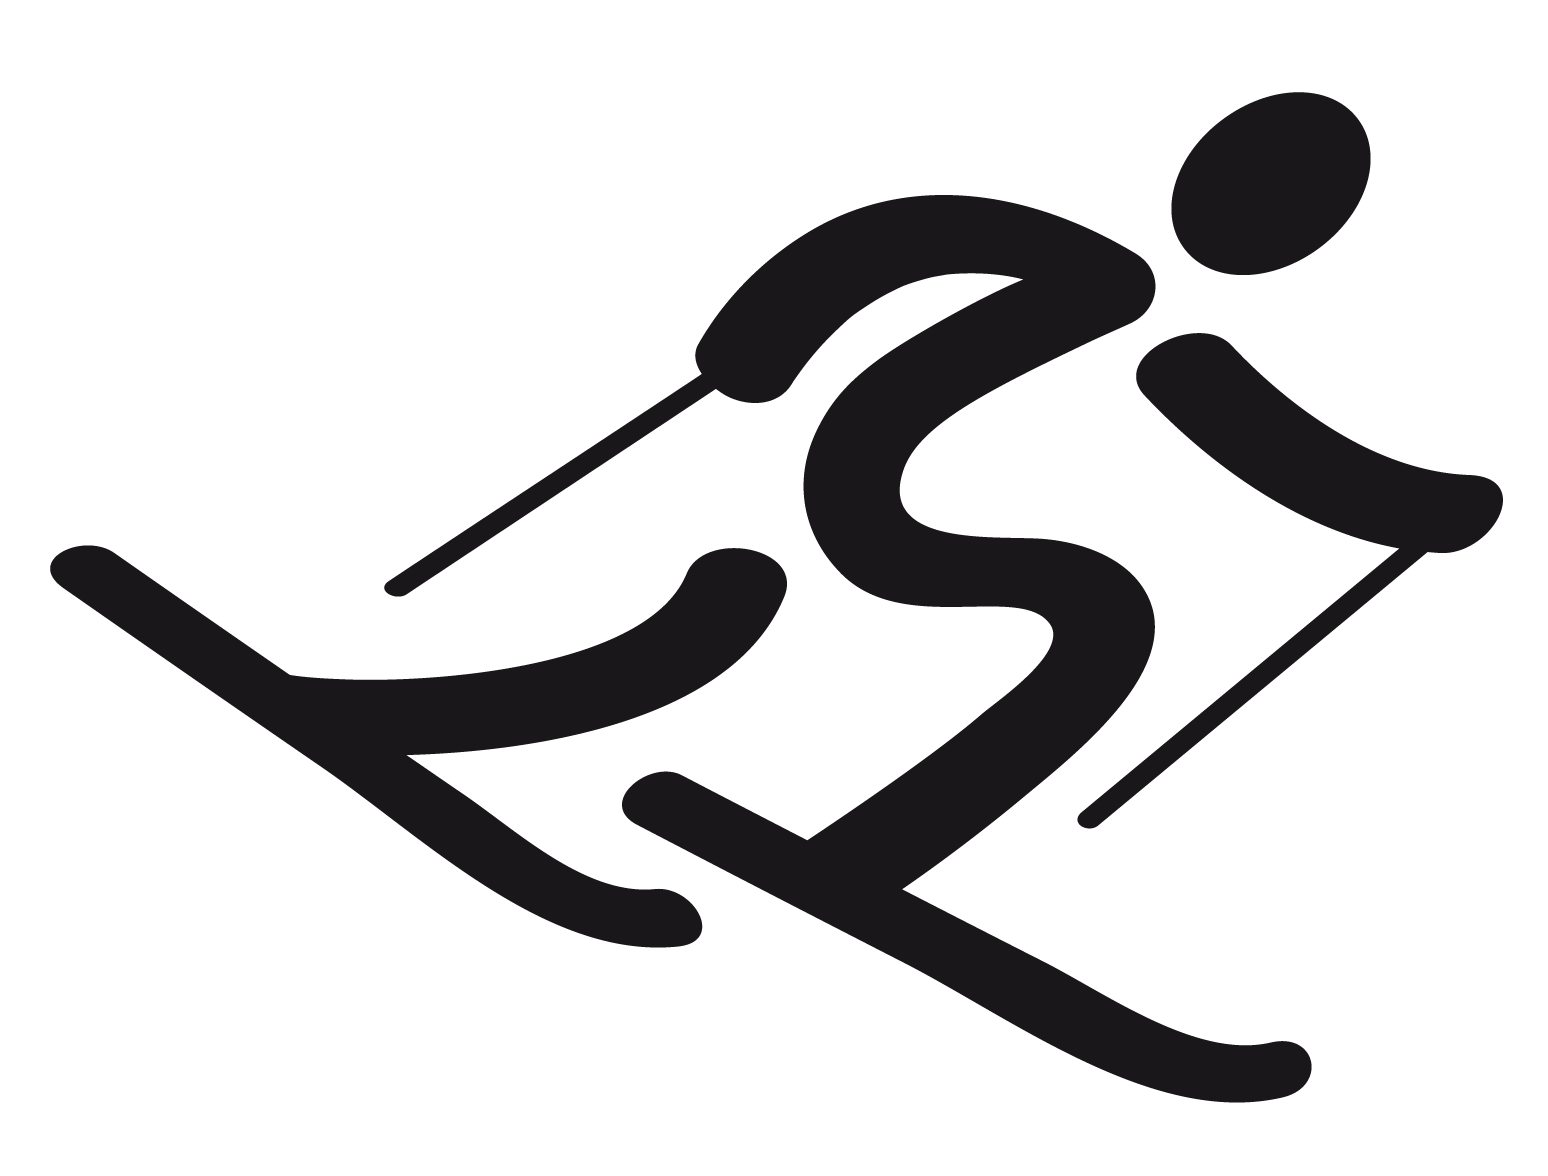 17 Alpine Olympic Icon Images